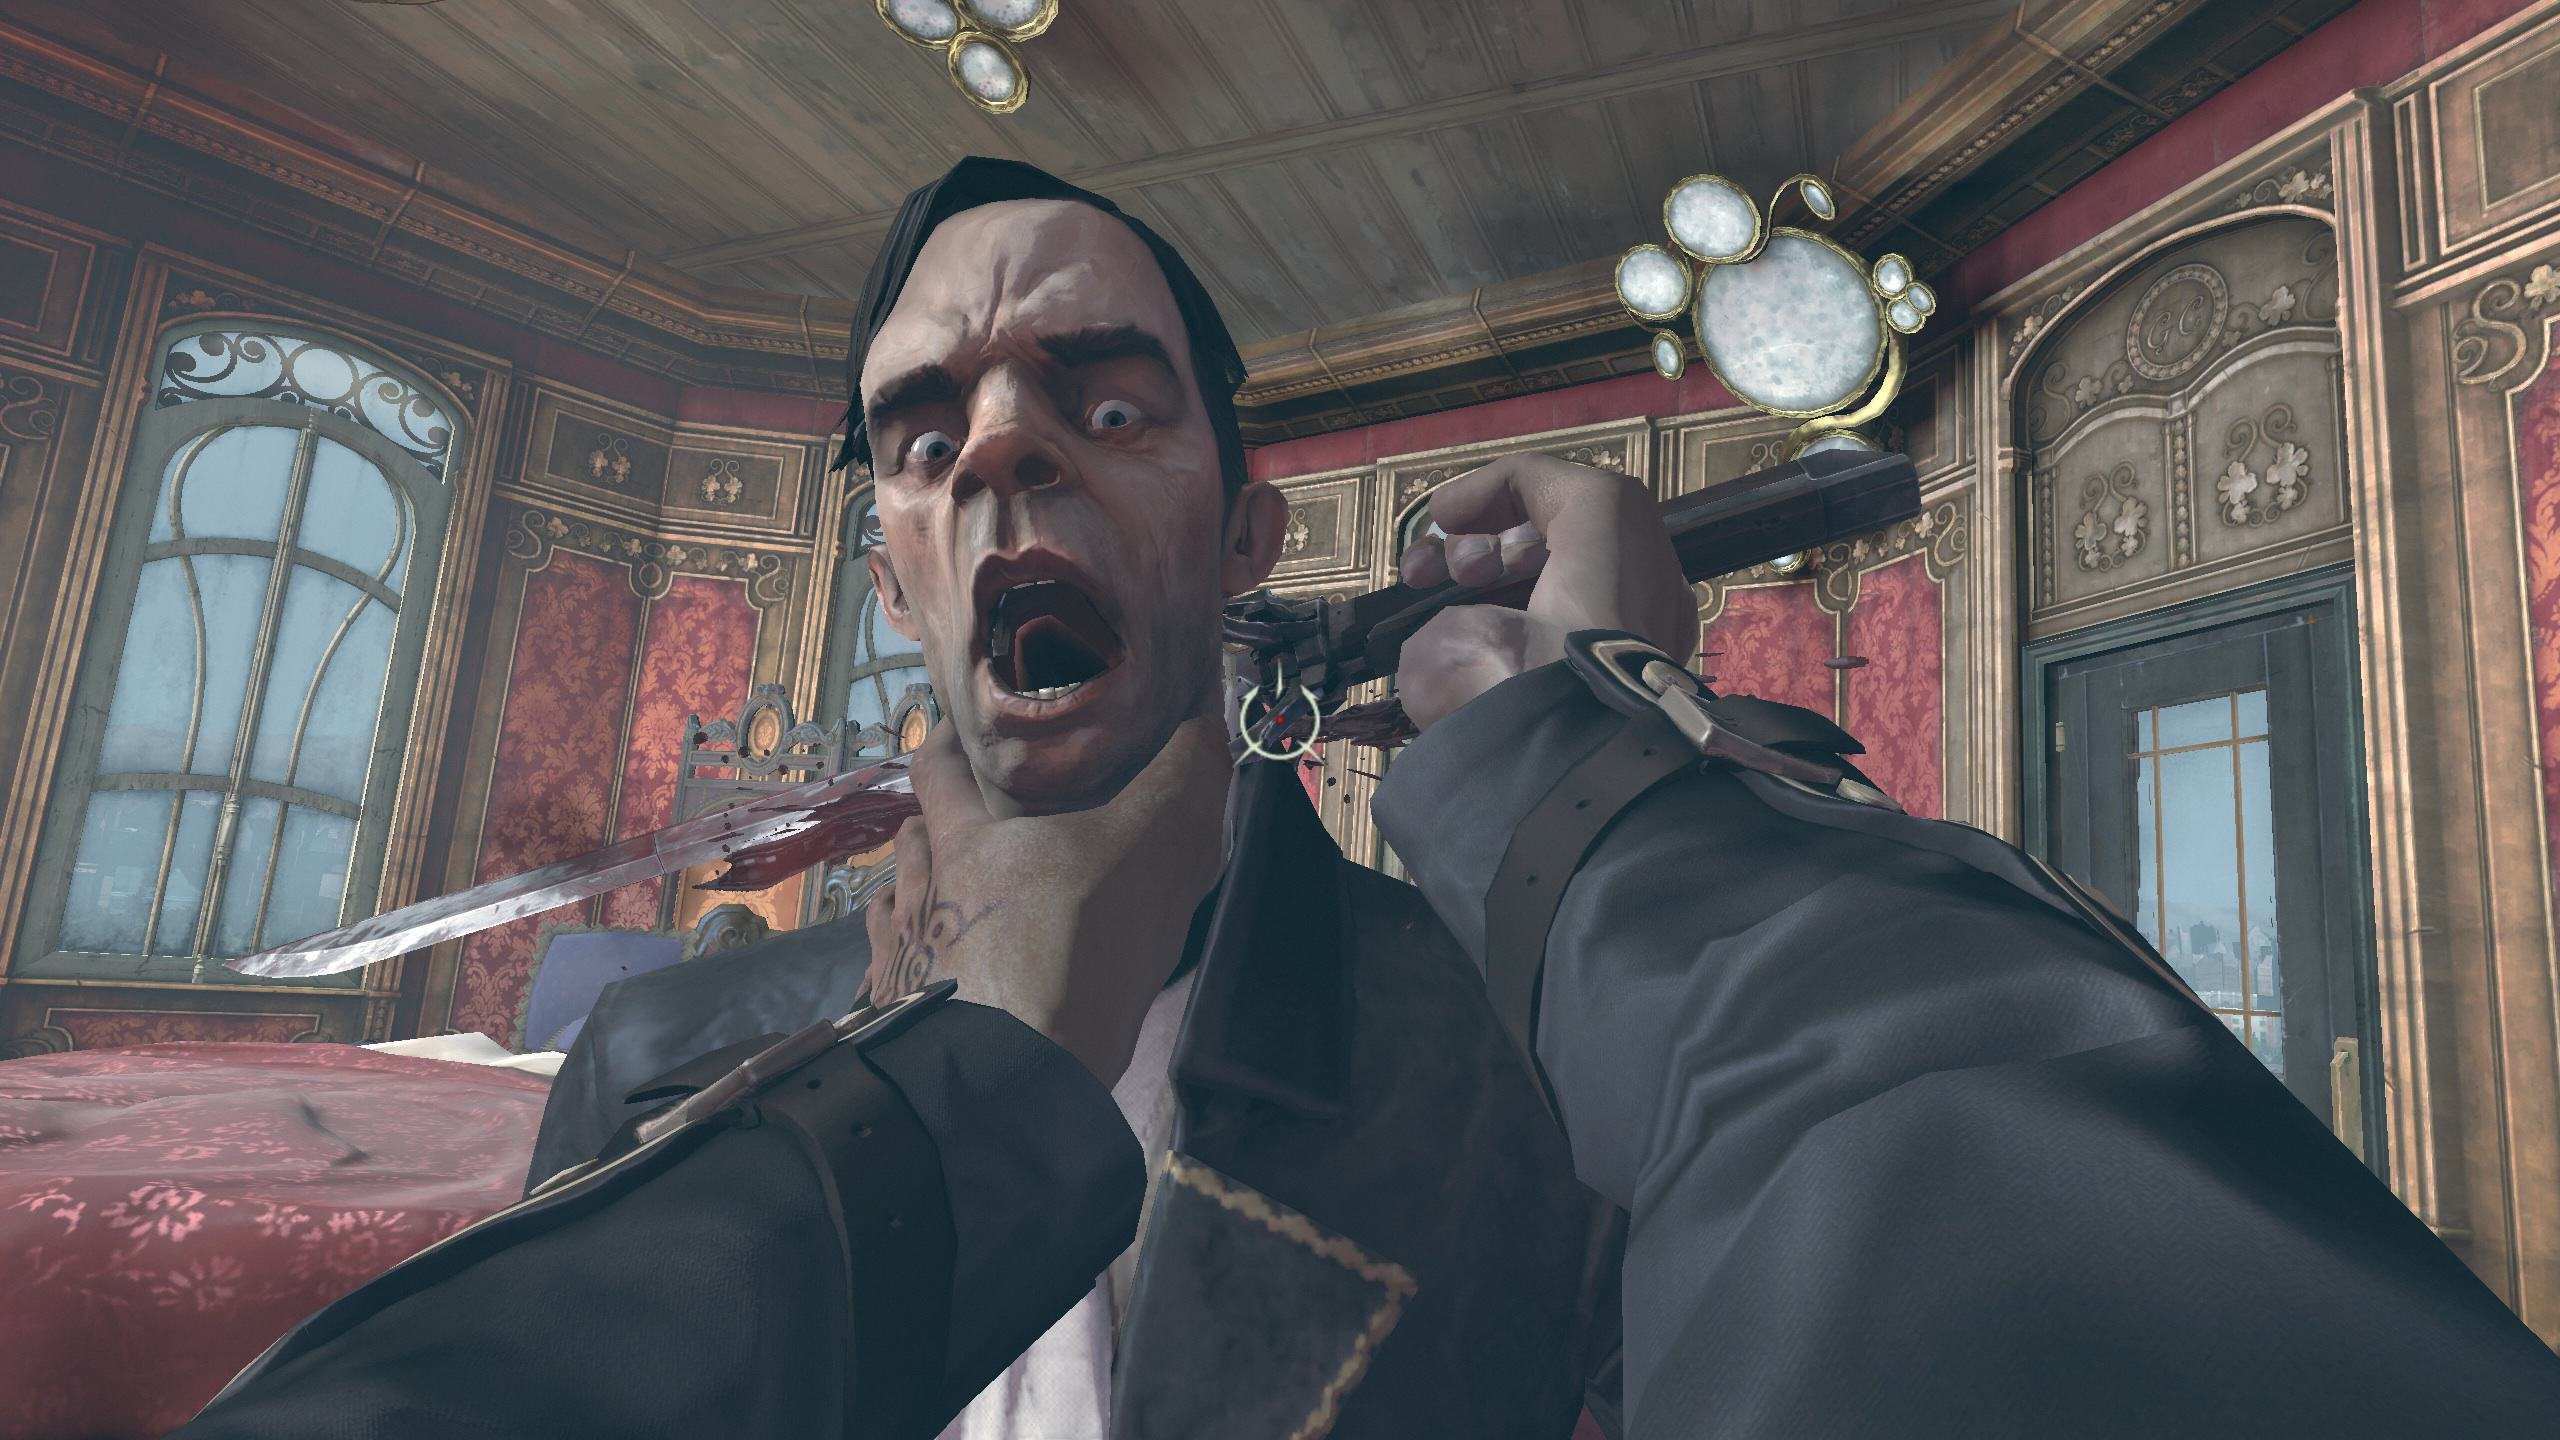 Brutally Stylish Dishonored Run Shows How Slick The Game Can Be UNILAD Dishonored 2012 11 14 12 37 37 8293674